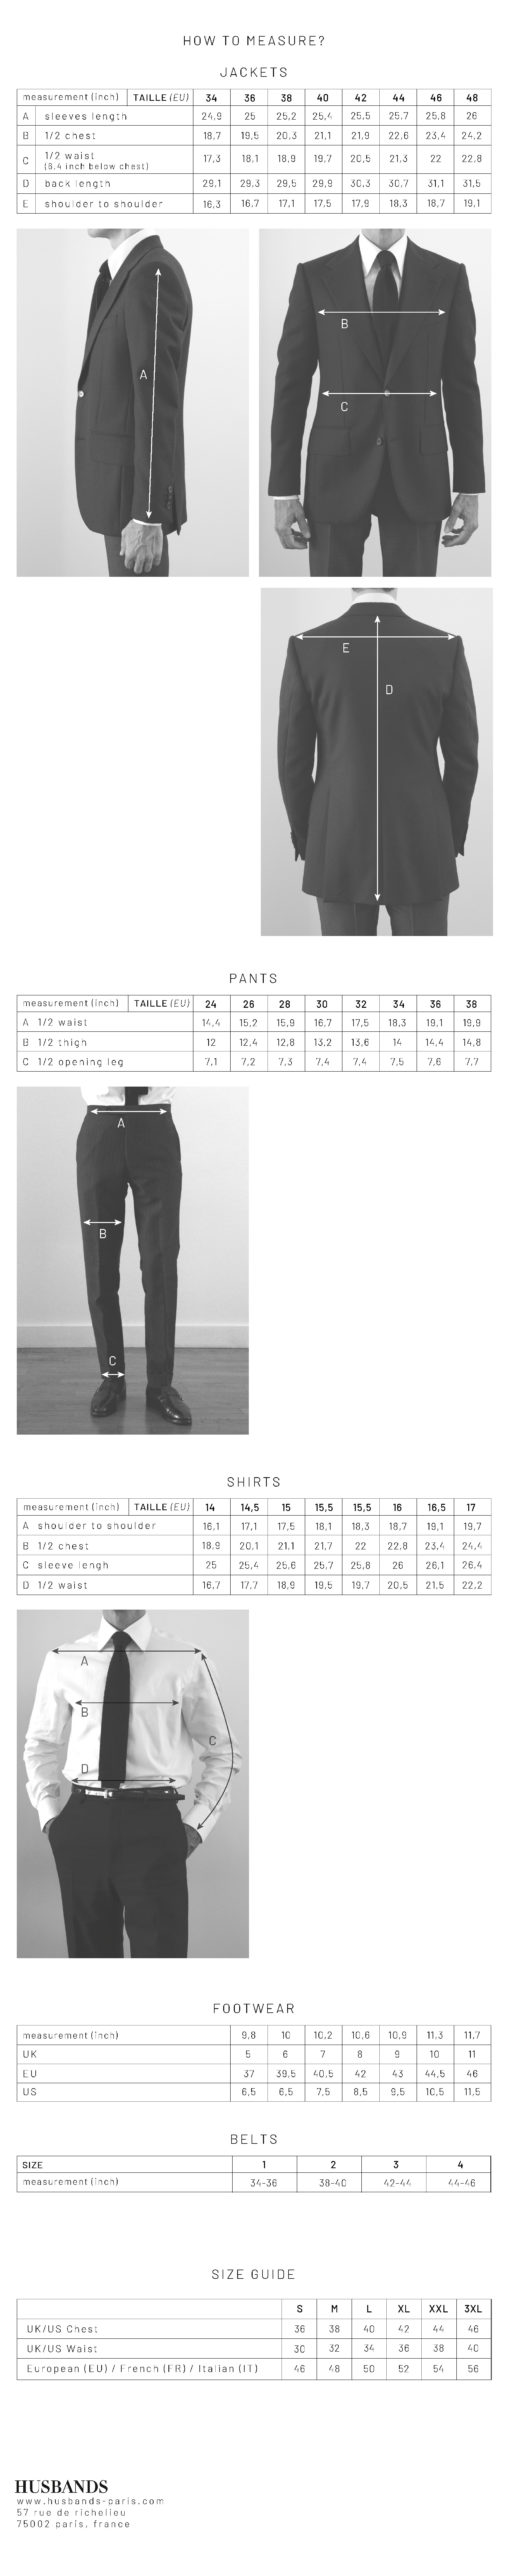 Husbands sizing guide EN